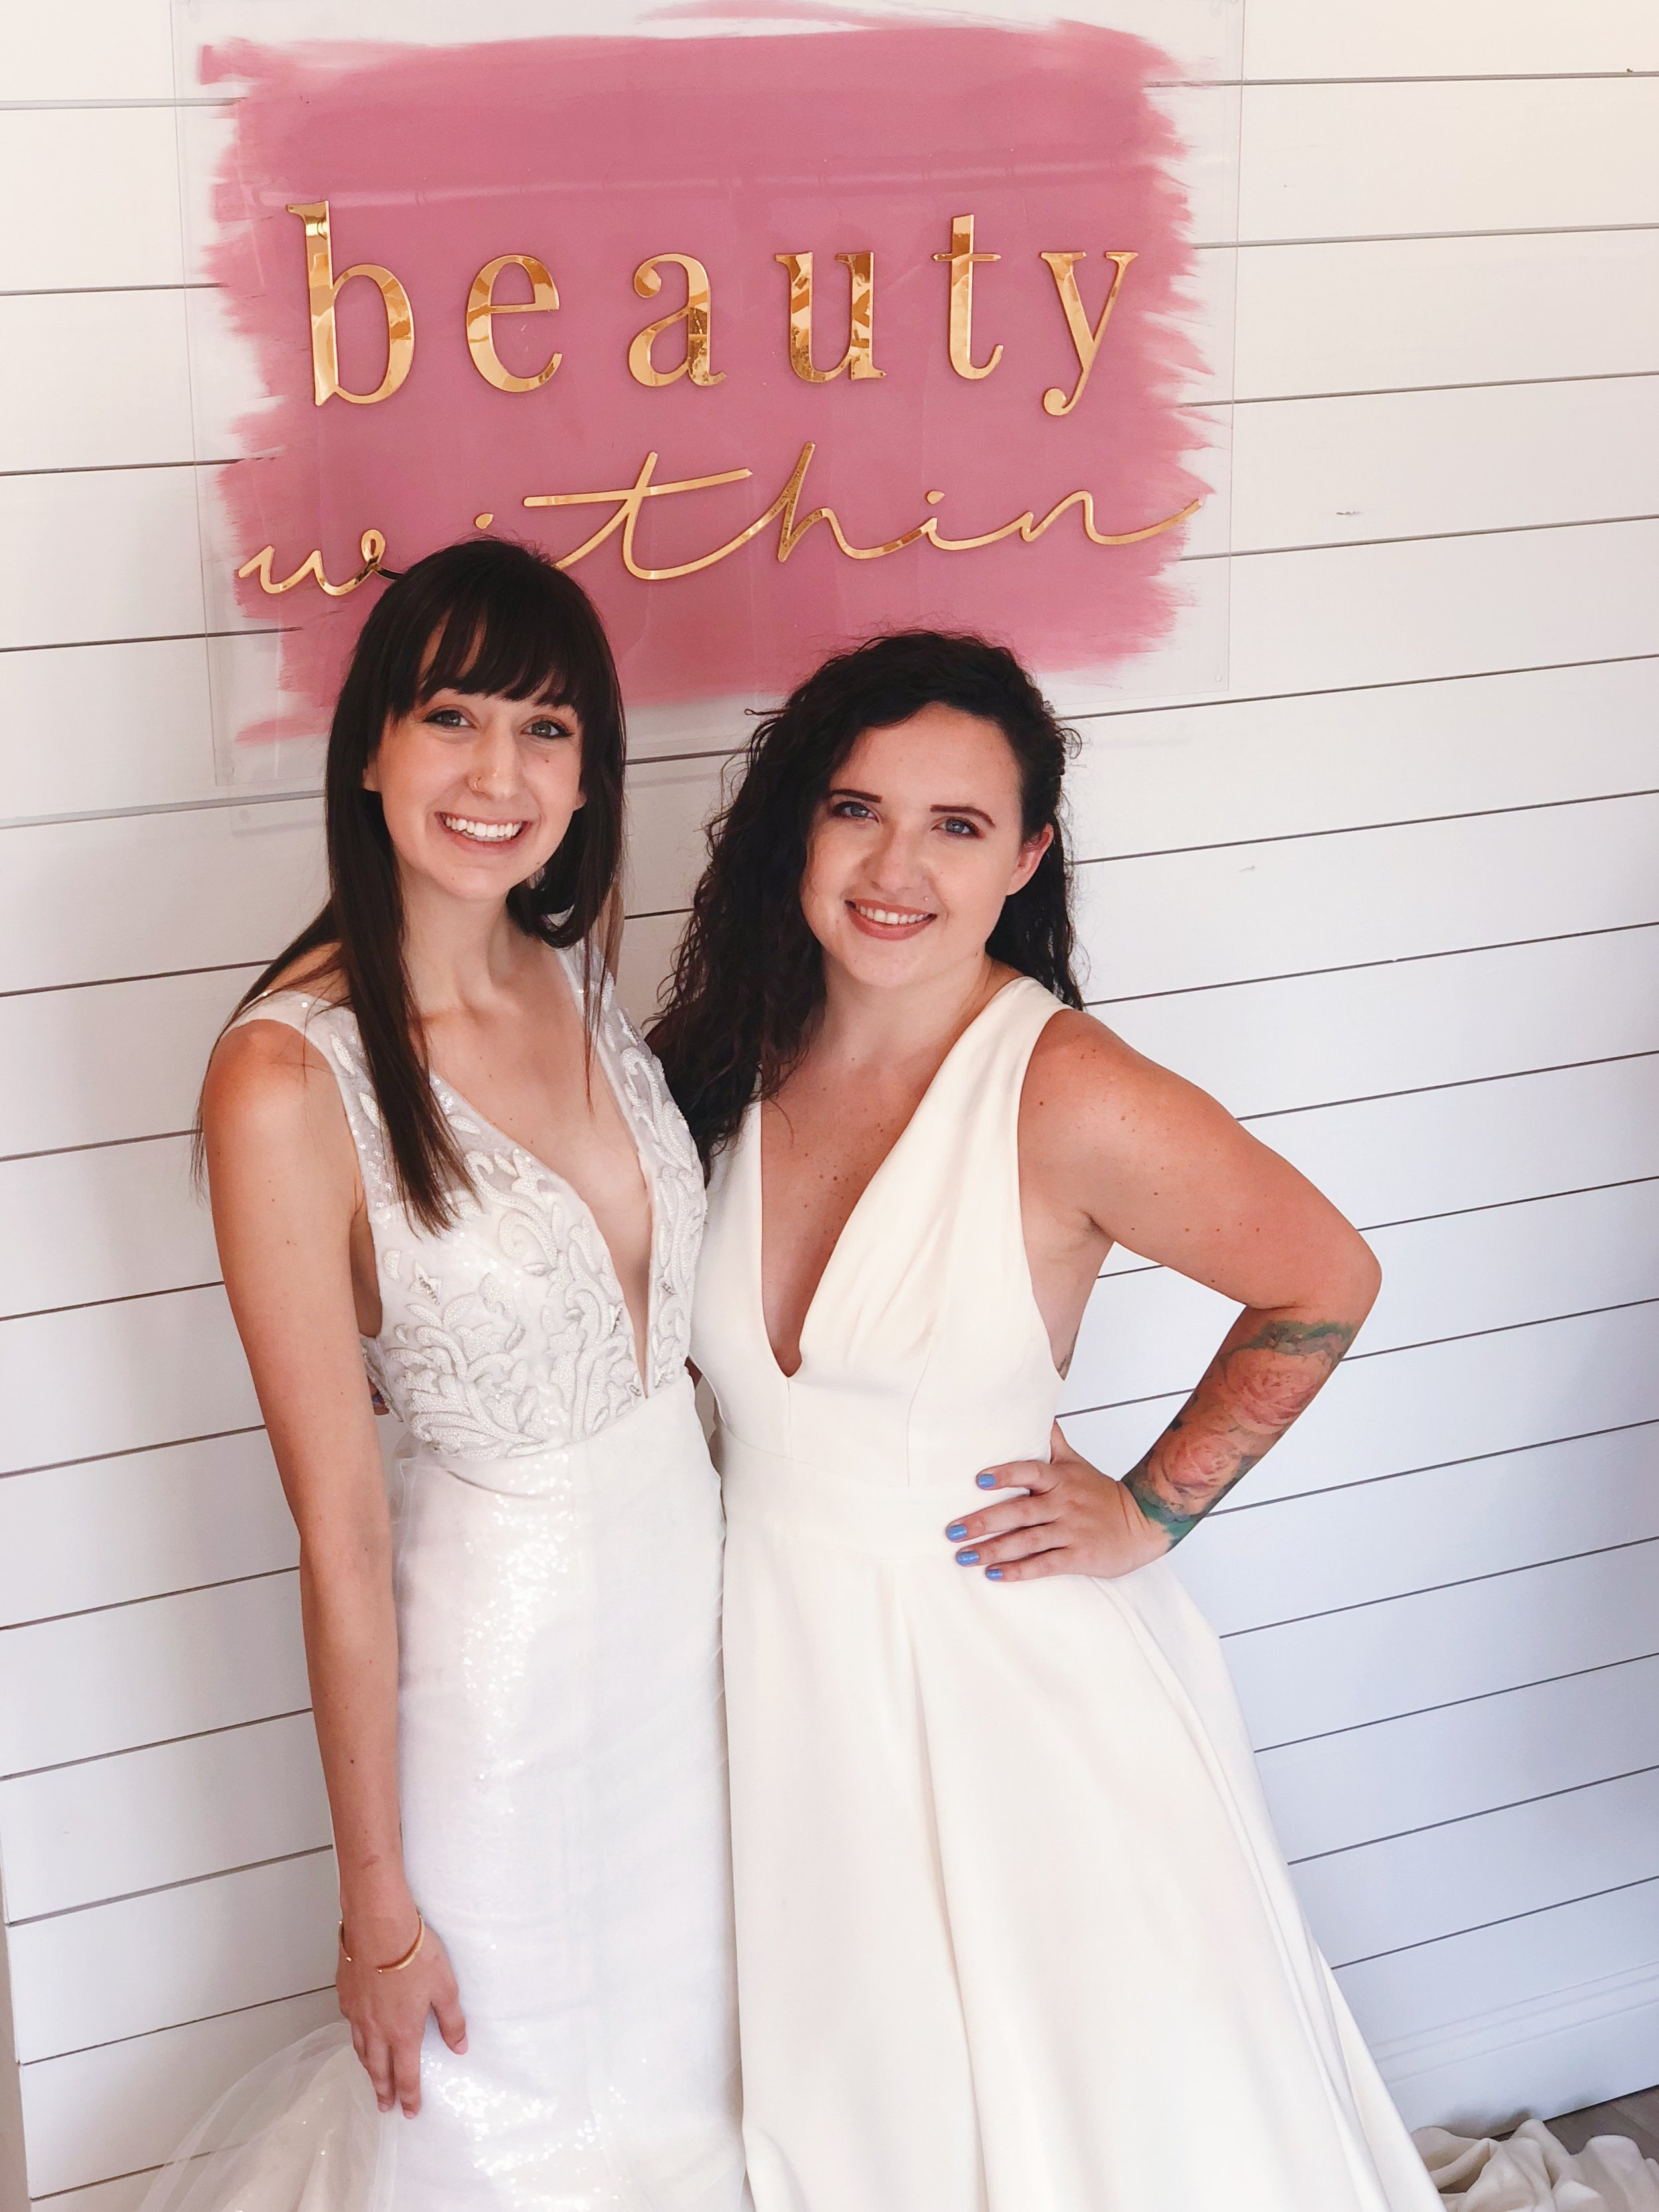 P.S. here is consultants, Chris and Destiny, playing a bit of dress up in these stunning Edith Elan gowns. These two girls, along with Lourdes, had a great time assisting brides in finding their perfect wedding dresses during the trunk show.    Until next time, XOXO - The Beauty Within Team